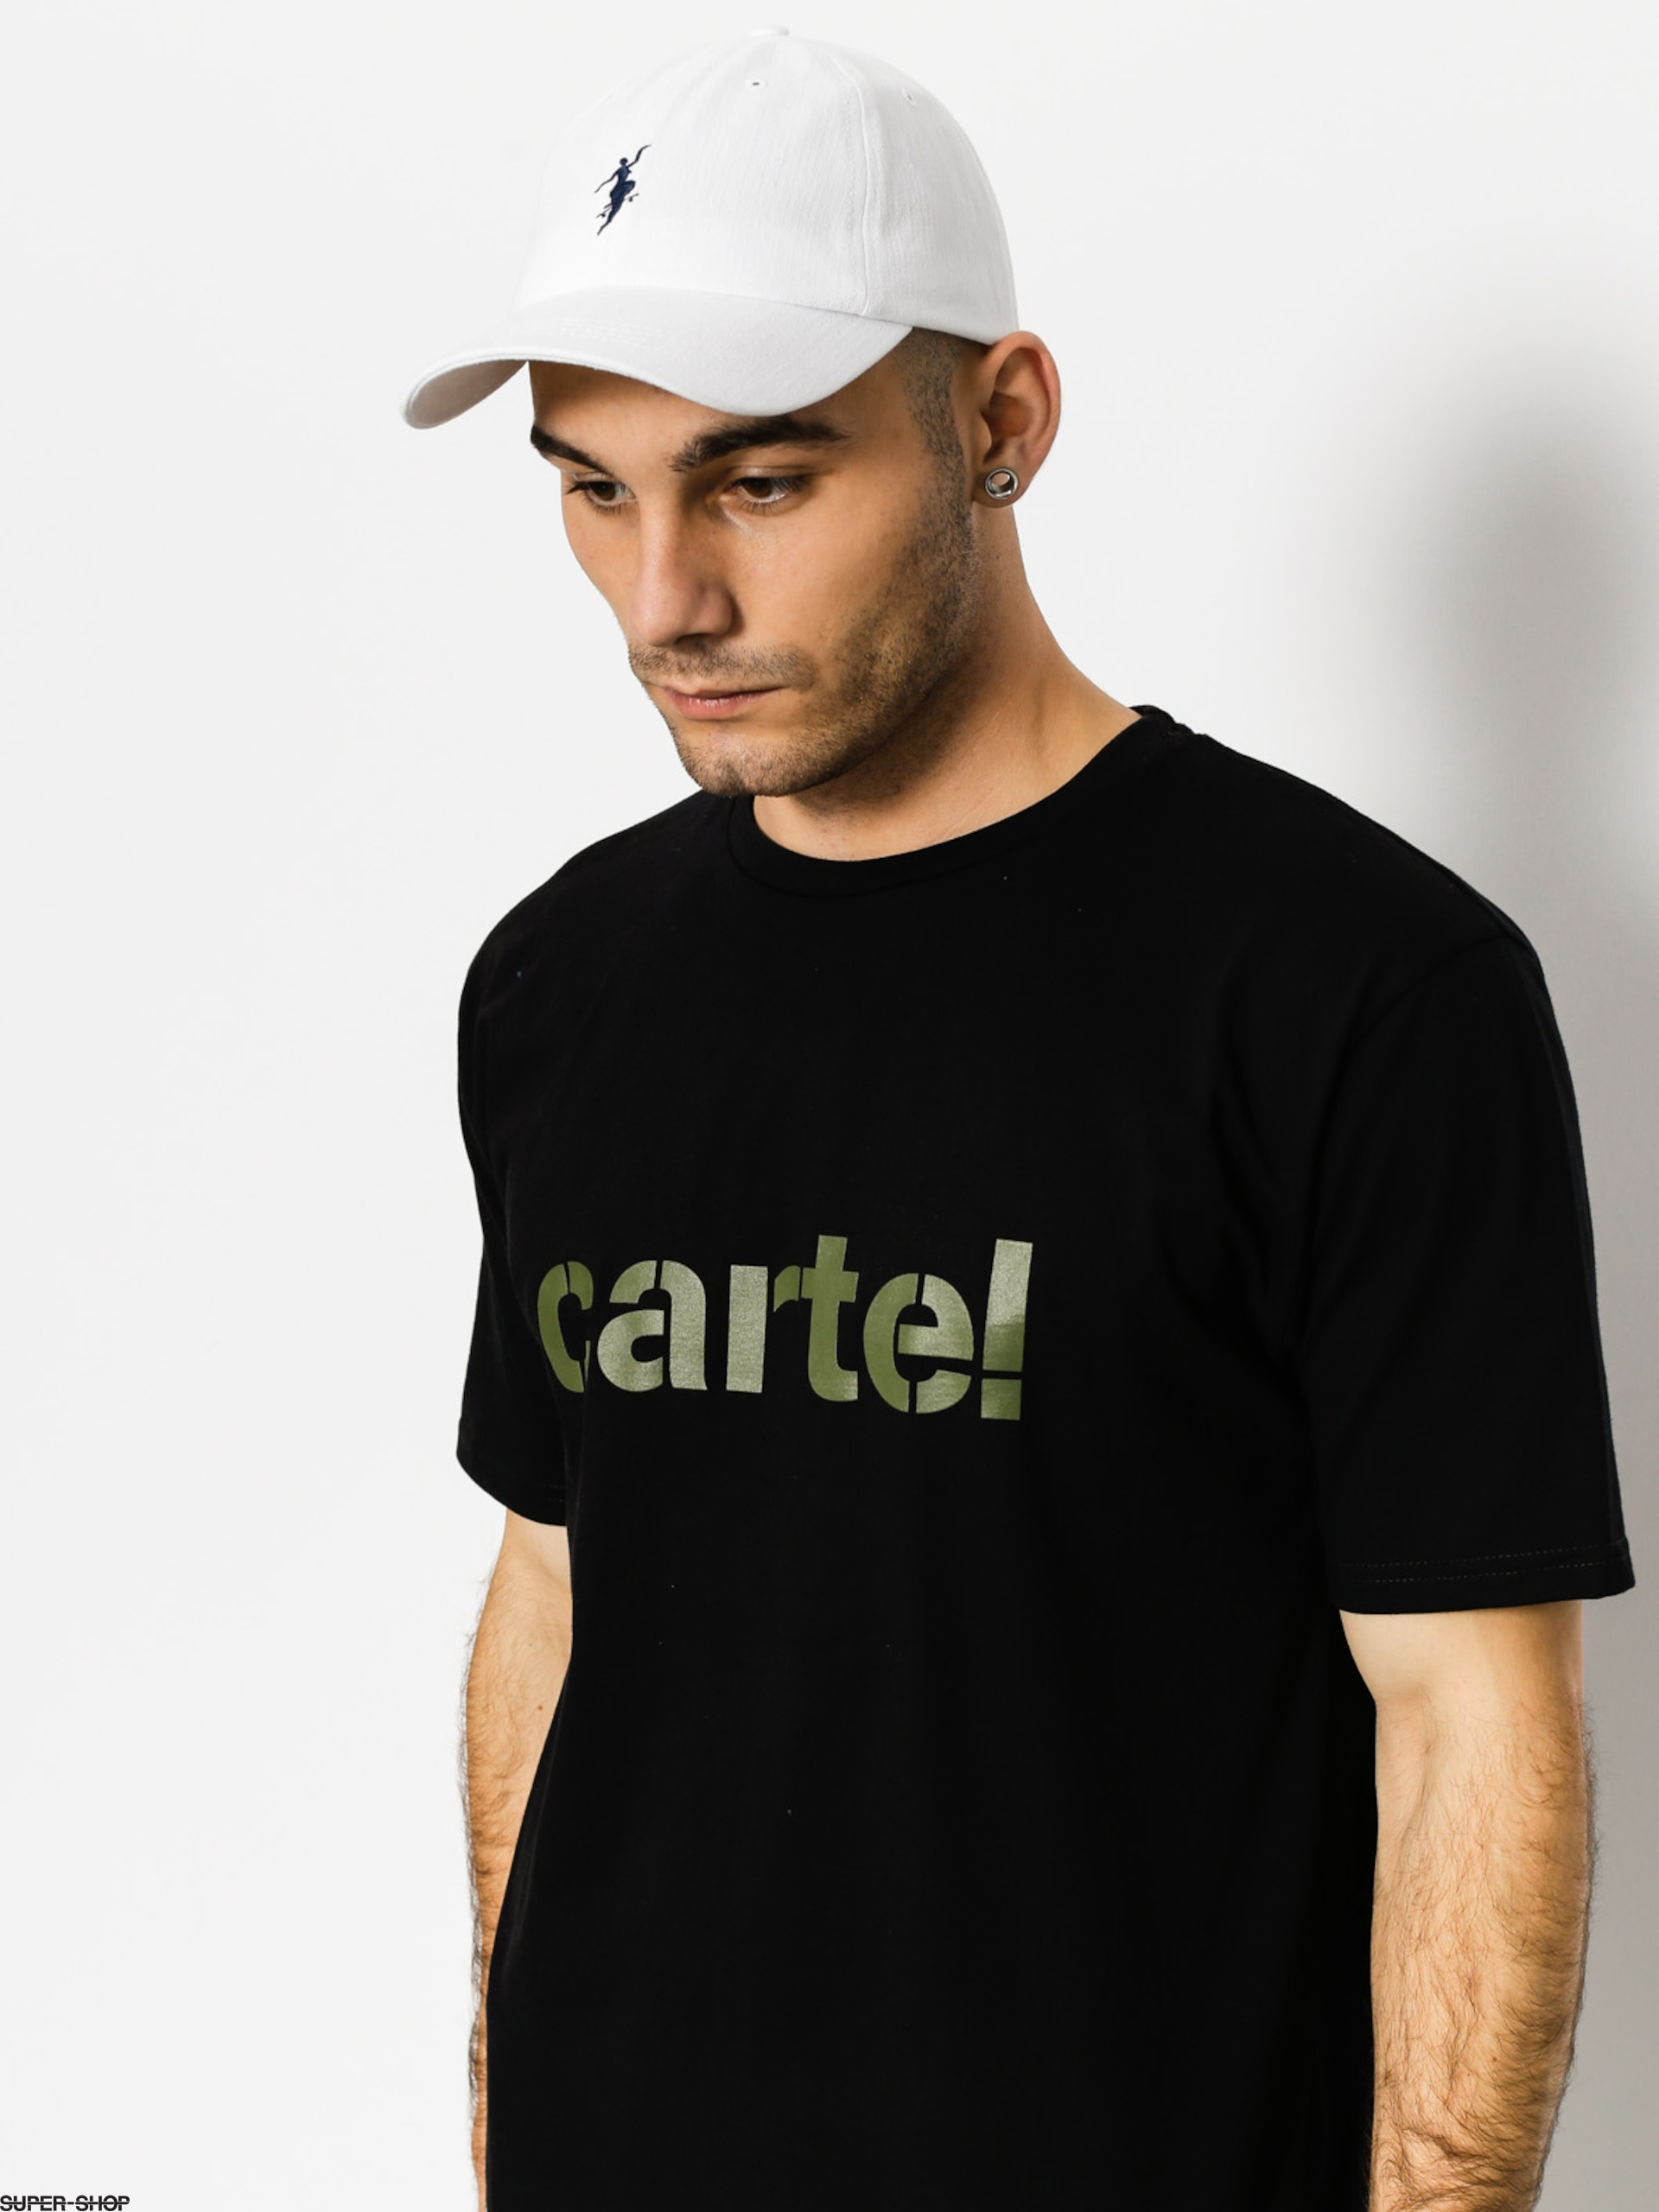 Backyard Cartel T-shirt Disaster